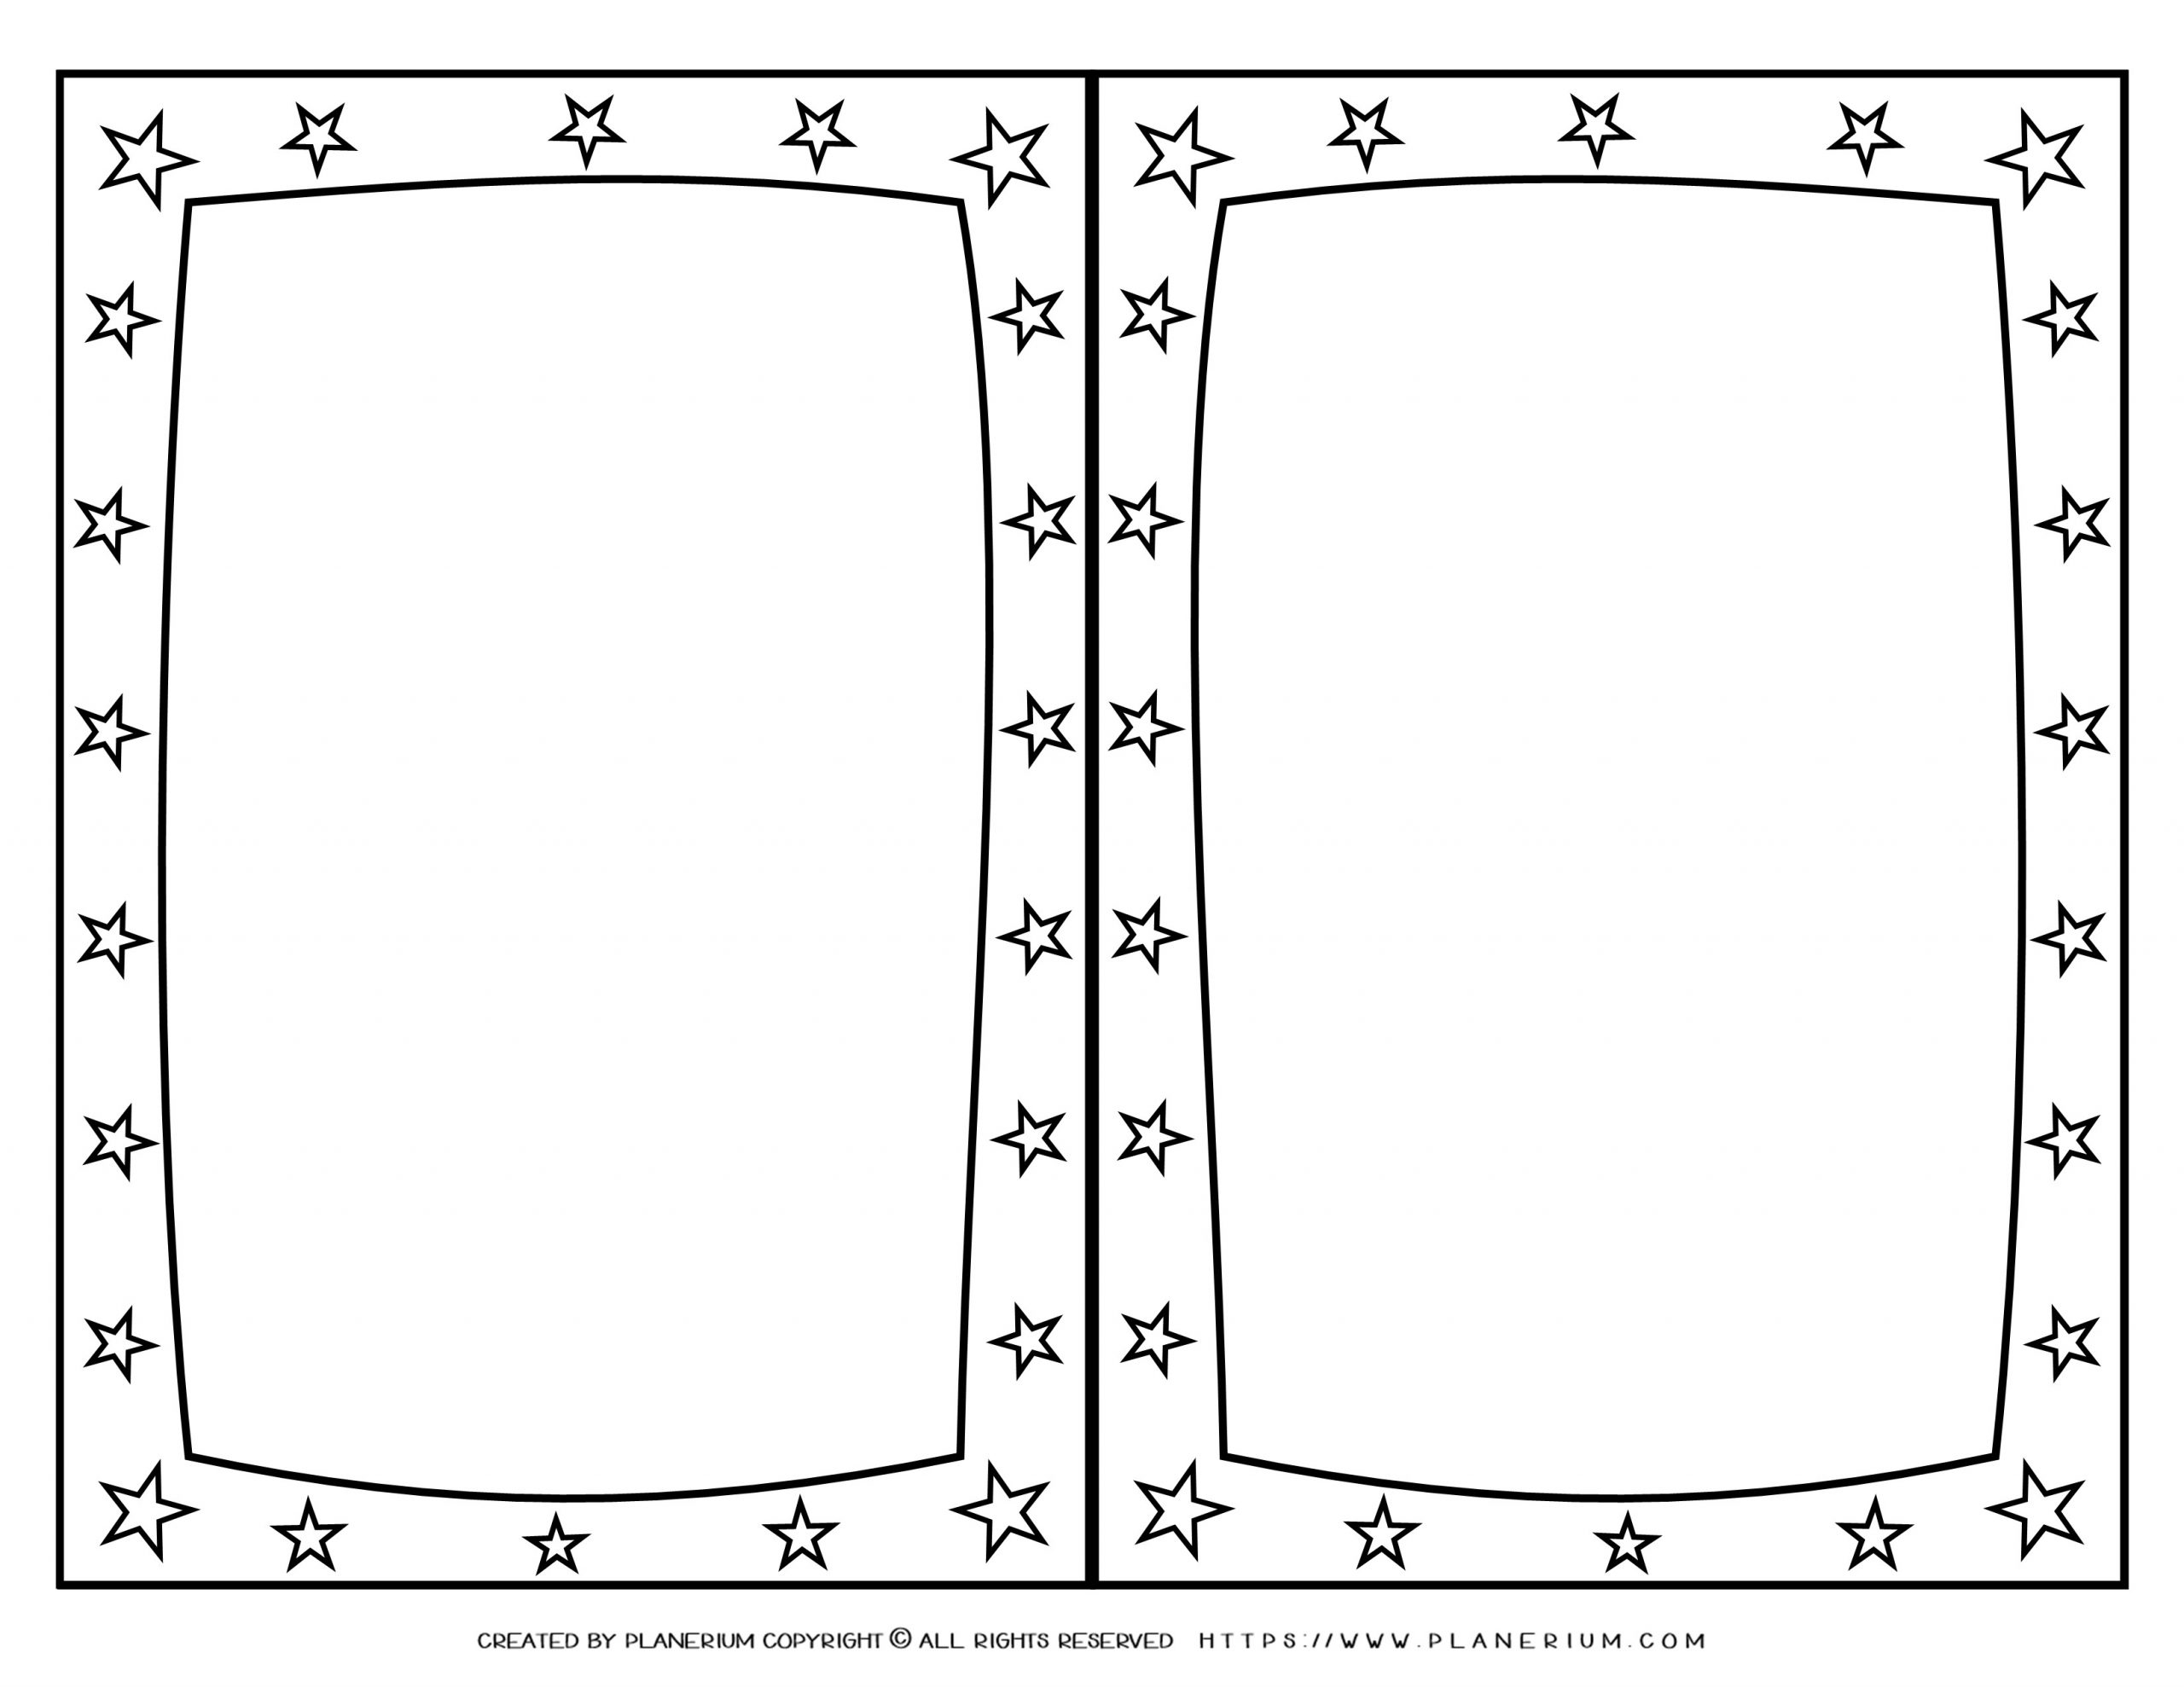 Mother's Day - Coloring Page - Greeting Stars Frame